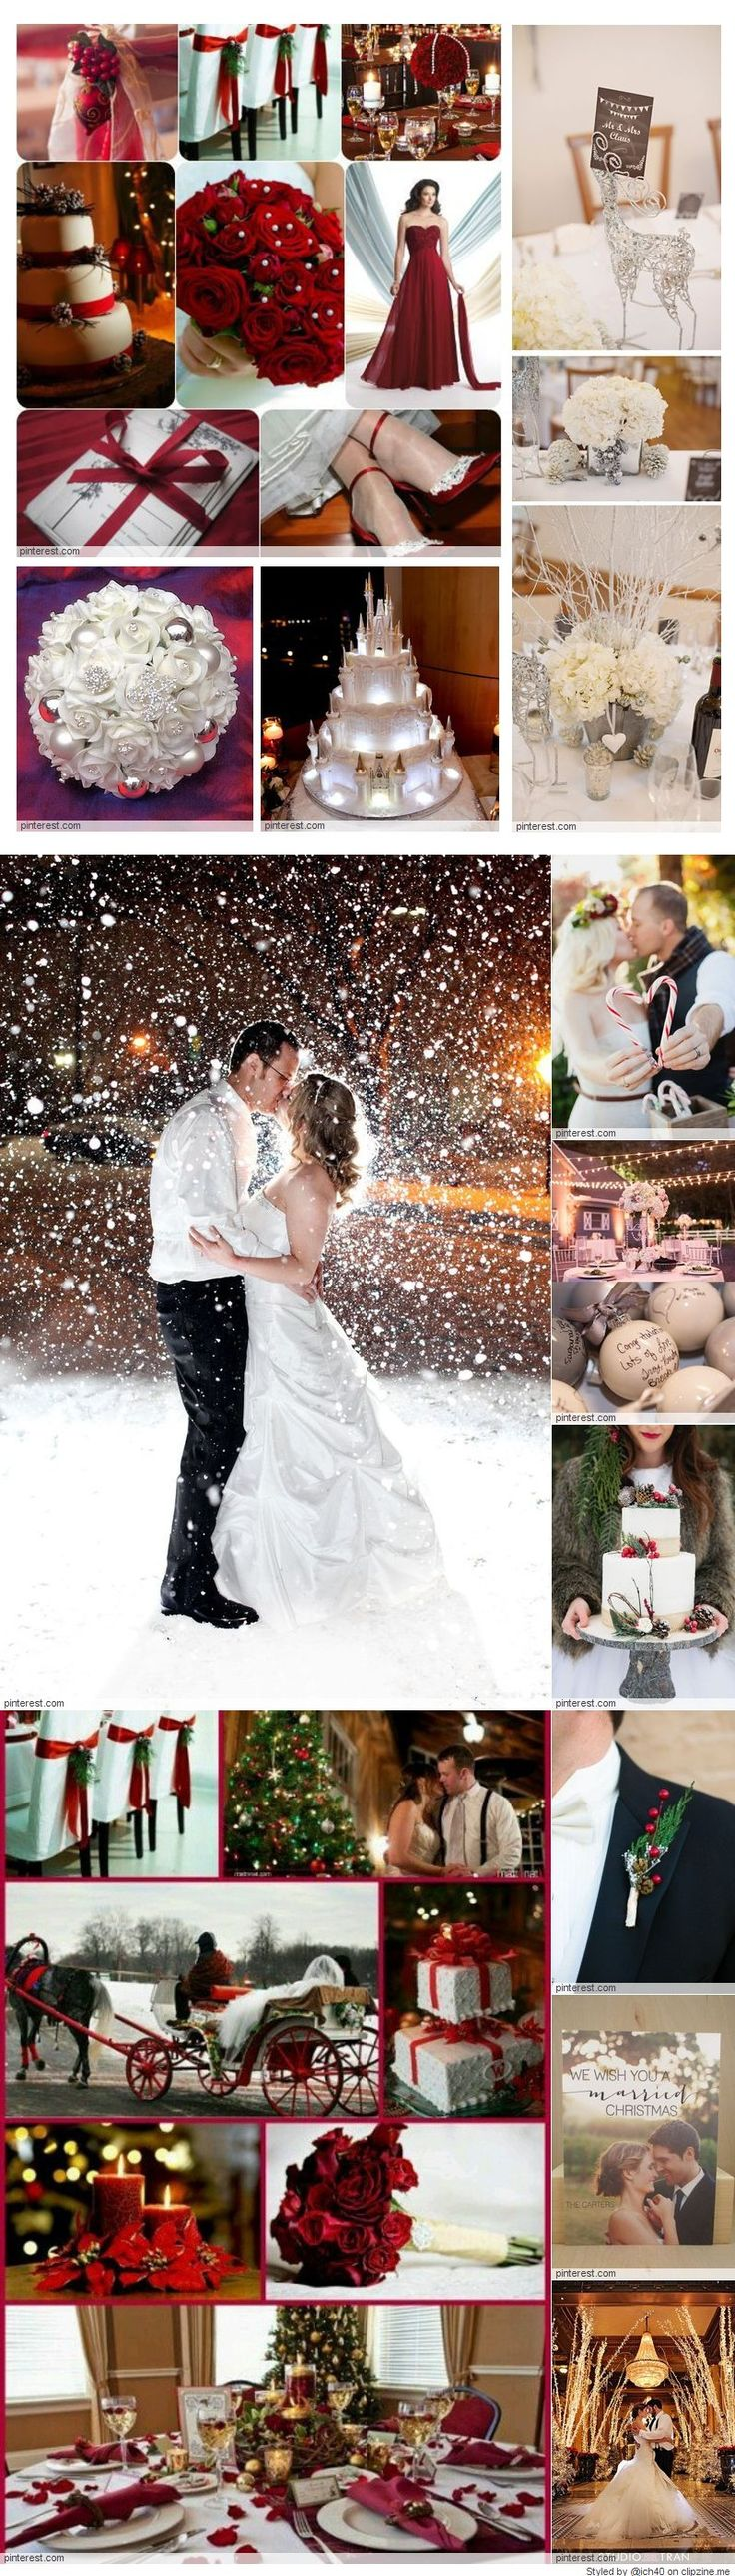 What great ideas for a Christmas wedding.  Love all the red and white decorations, the picture of the bride and groom in the snow and the red, flowing bridesmaids dresses.  Awesome.